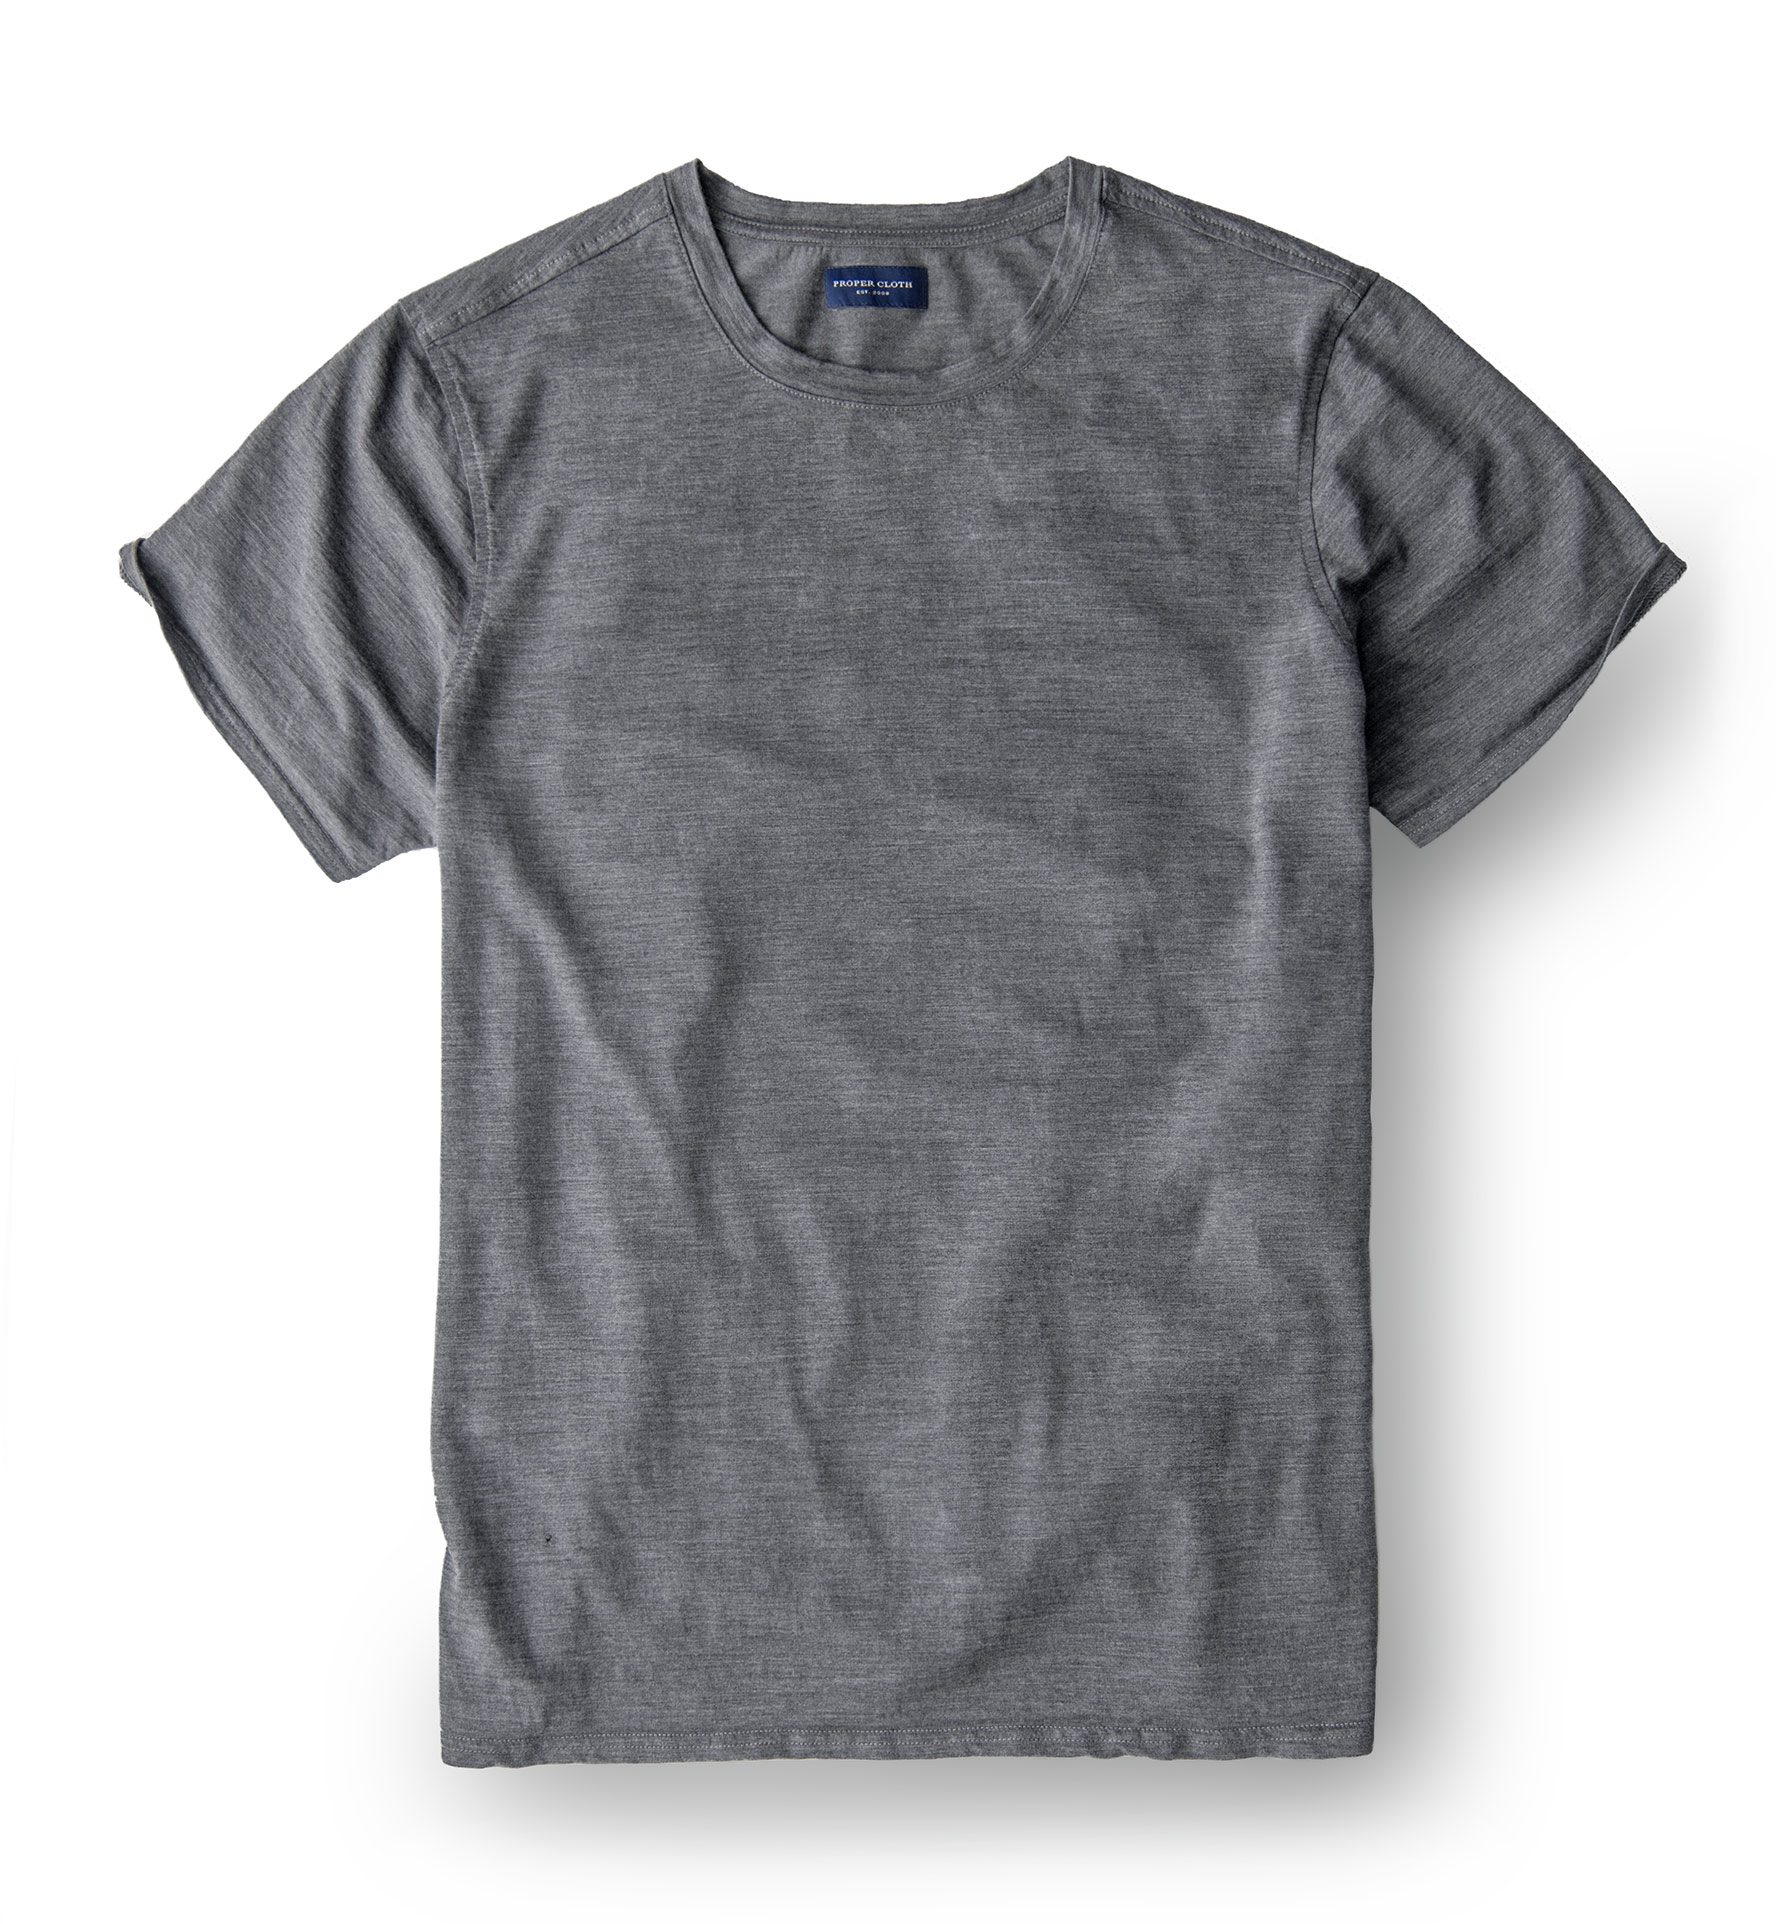 Zoom Image of Grey Merino Wool Crewneck T-Shirt